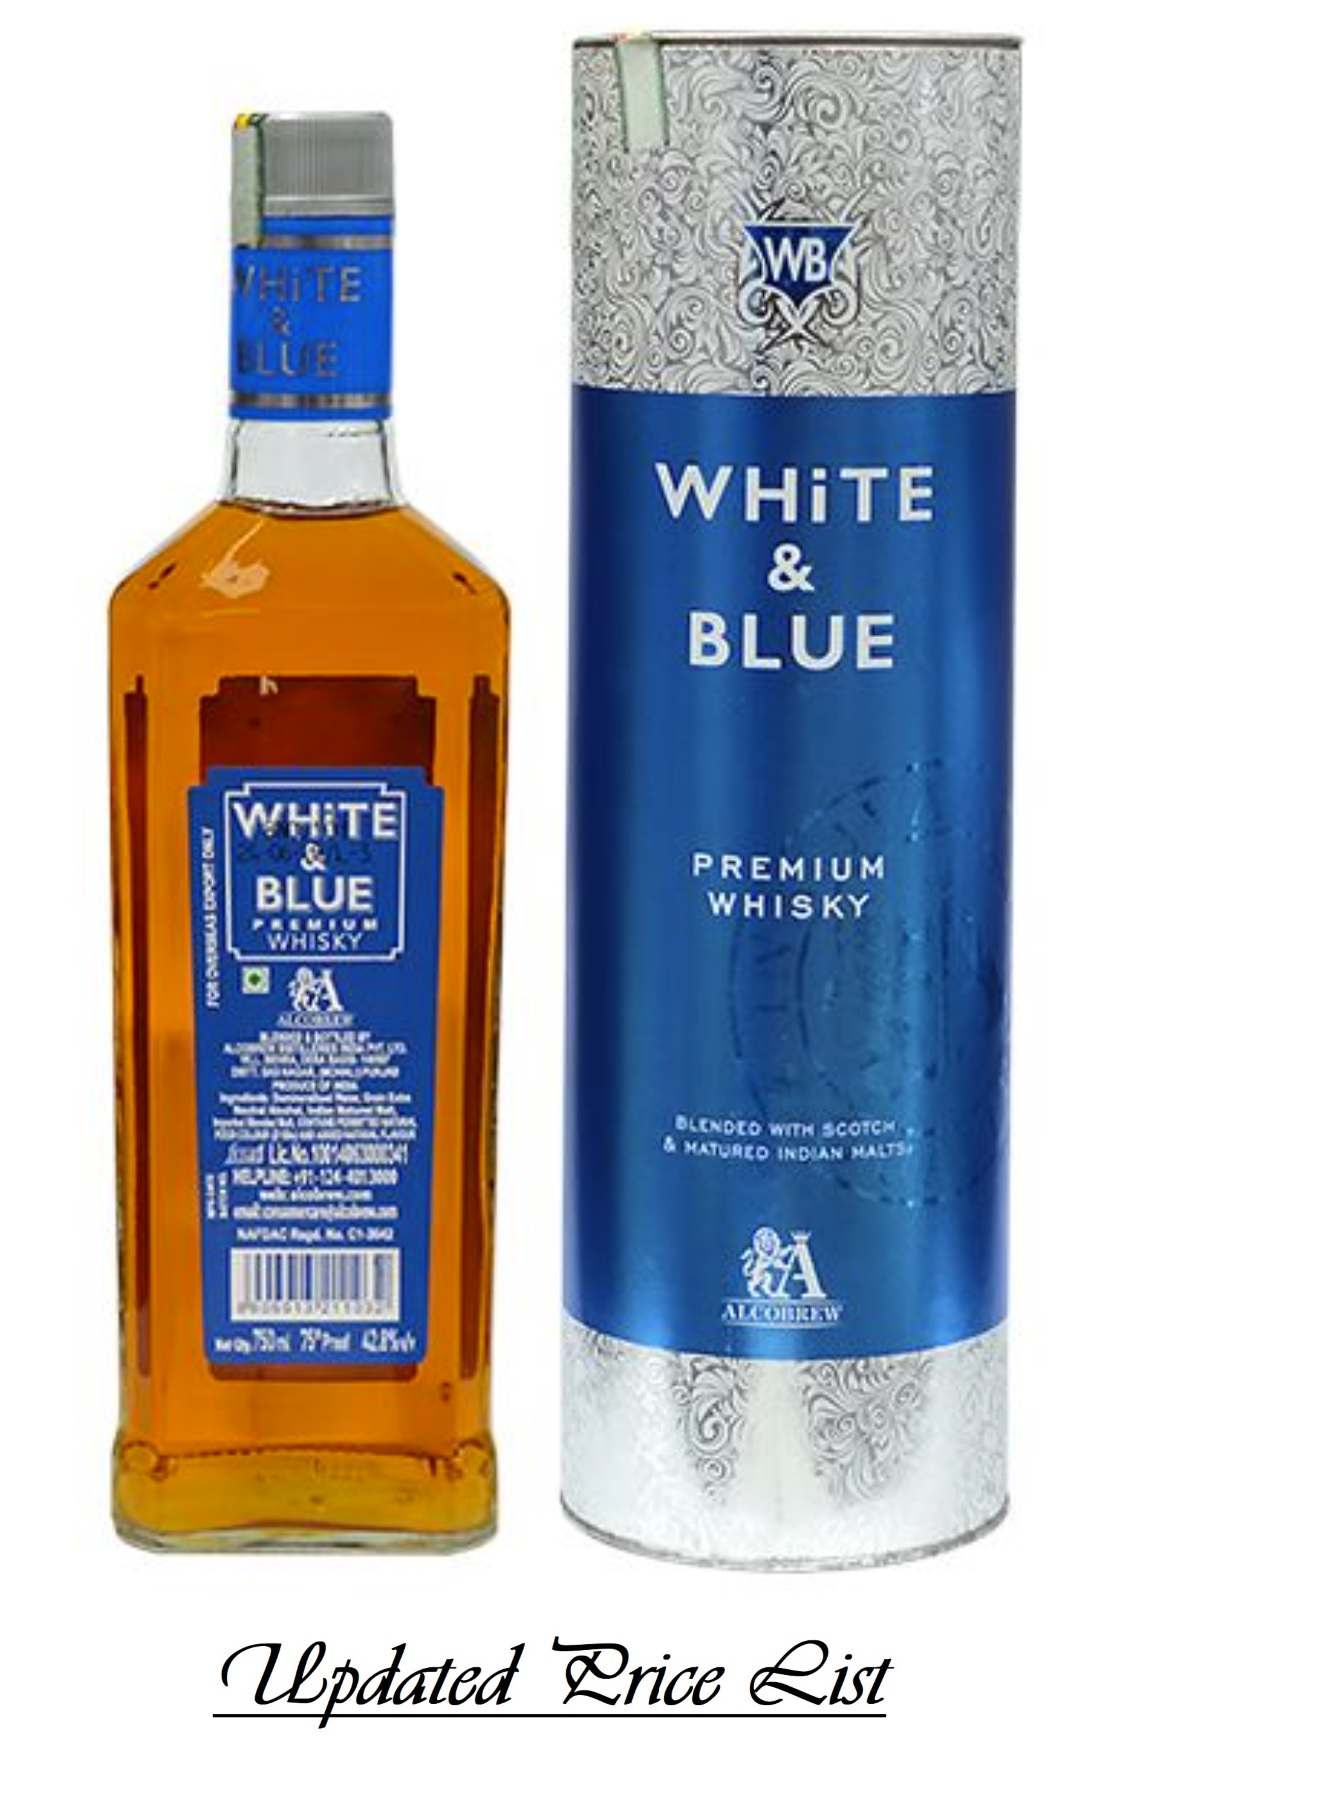 White and blue whisky price